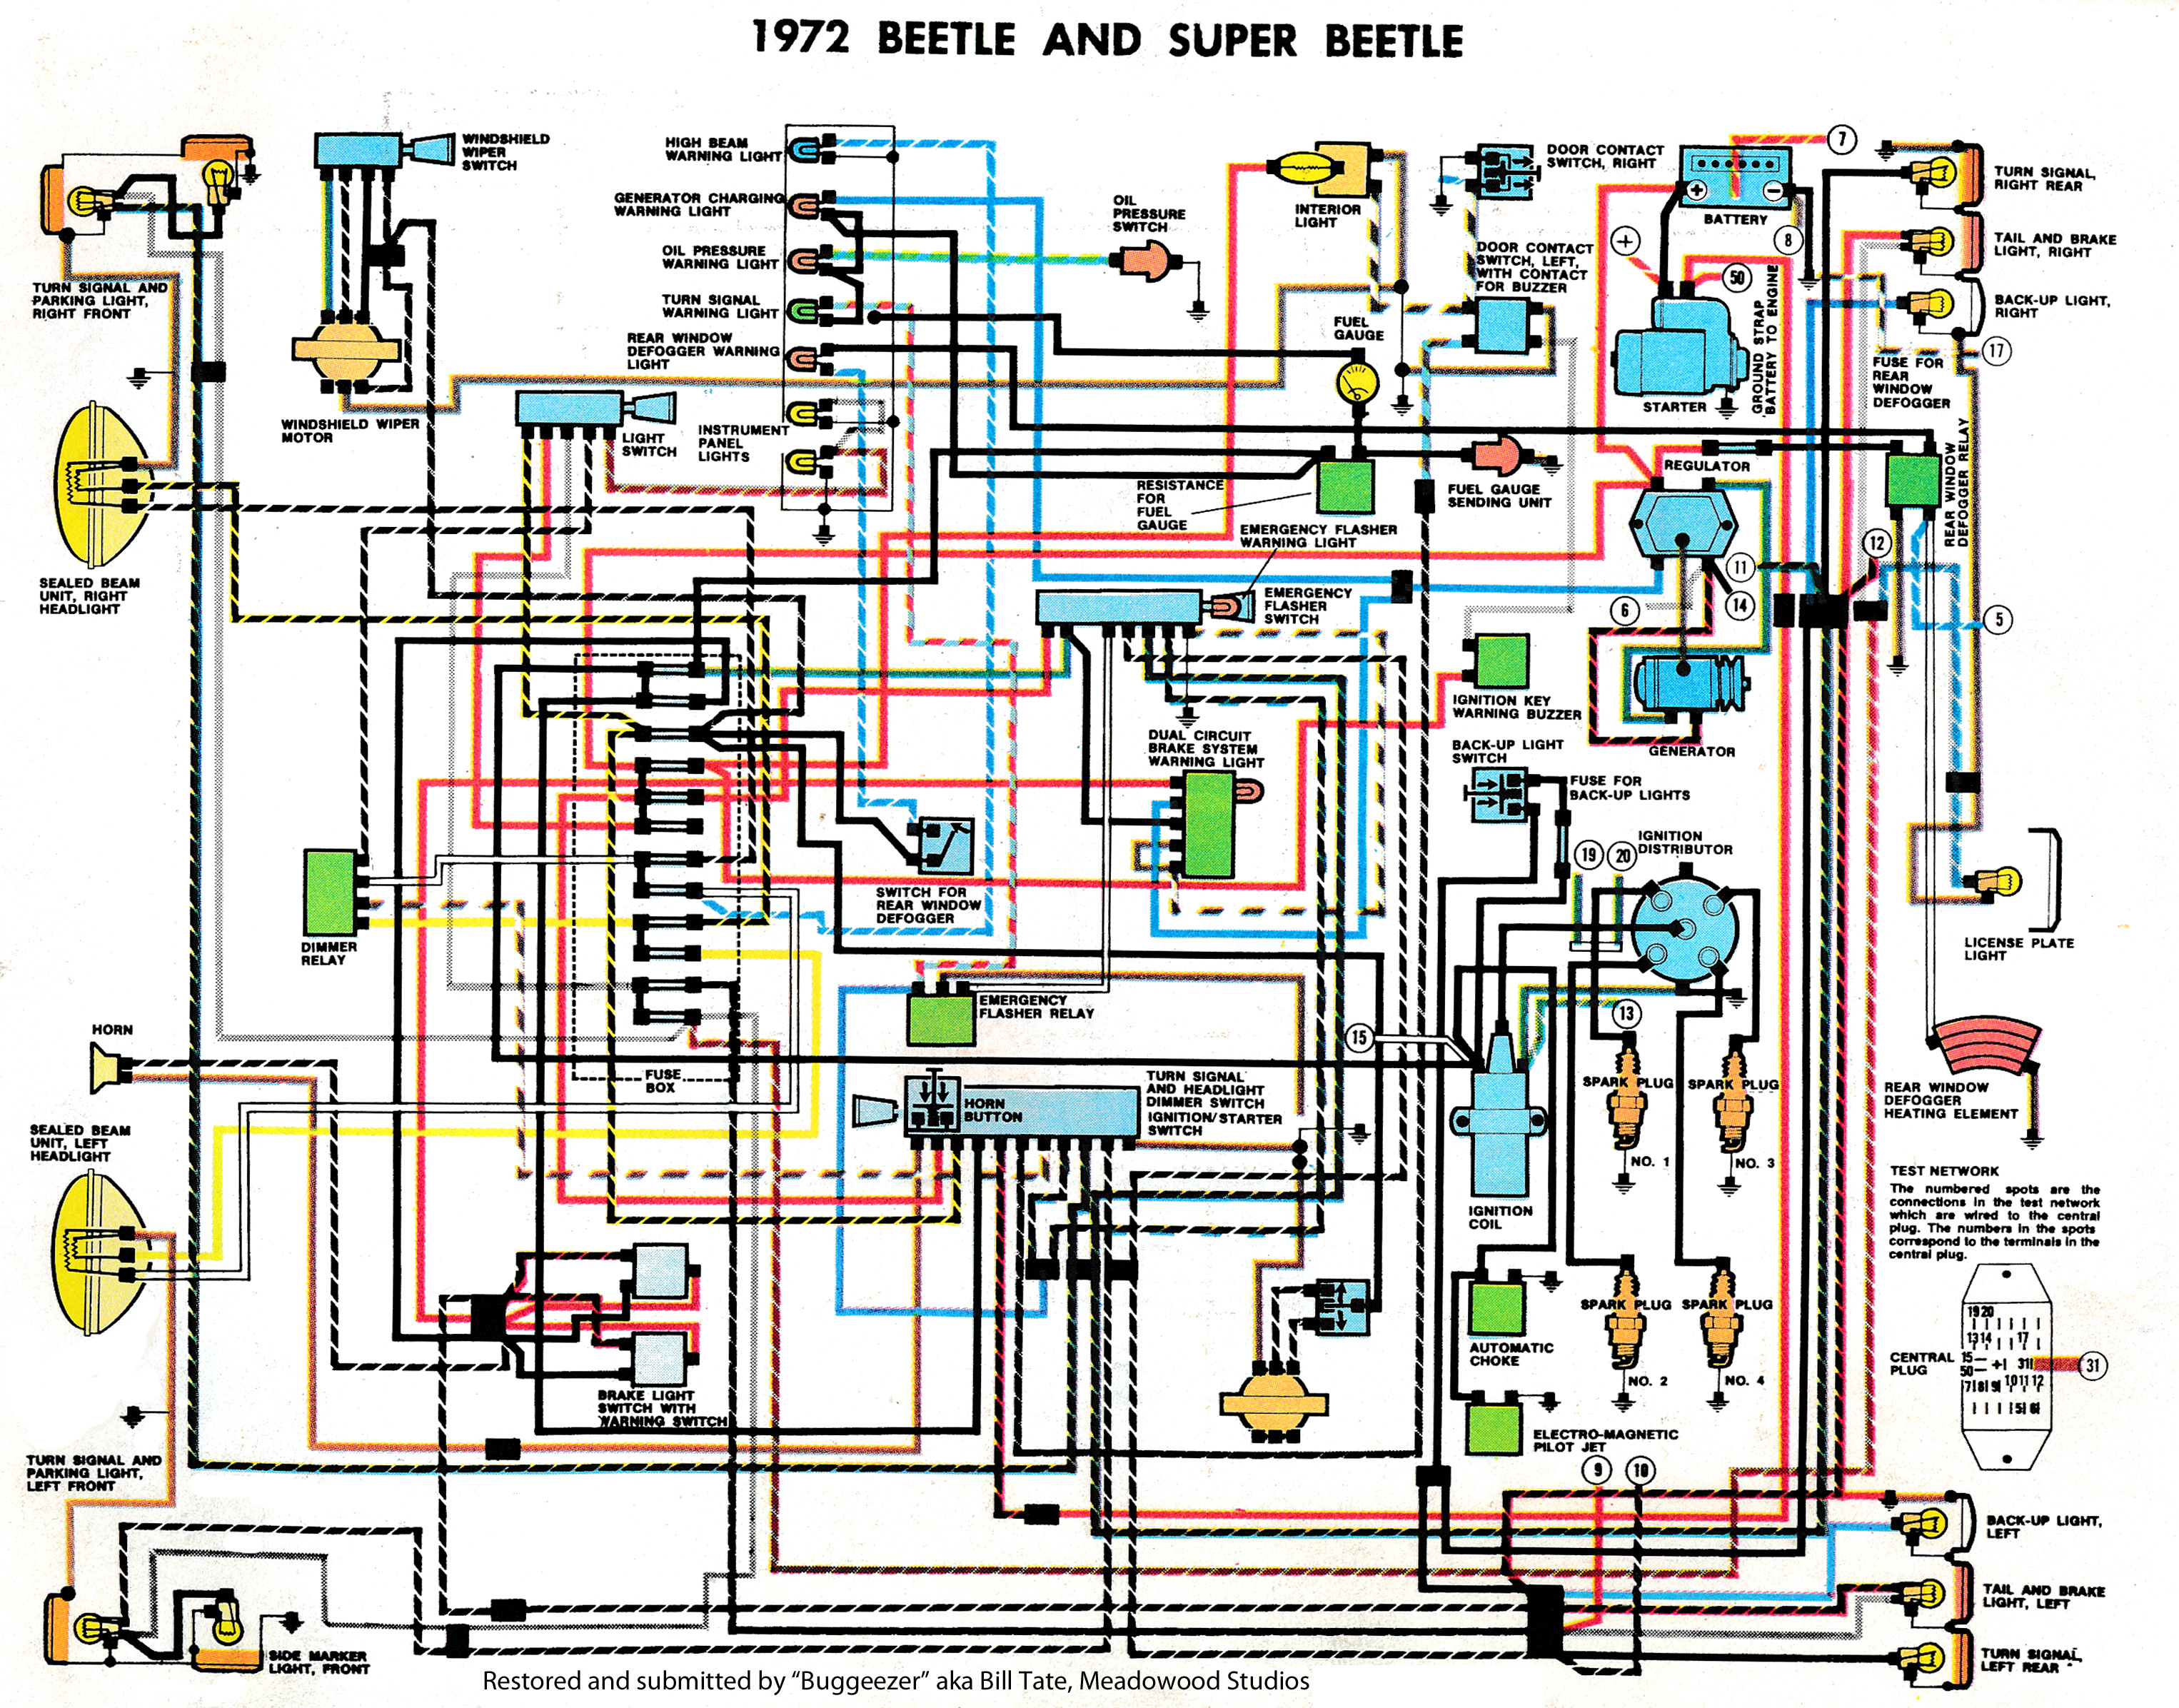 1974 vw bus wiring diagram of skull superior view anatomy super beetle 32